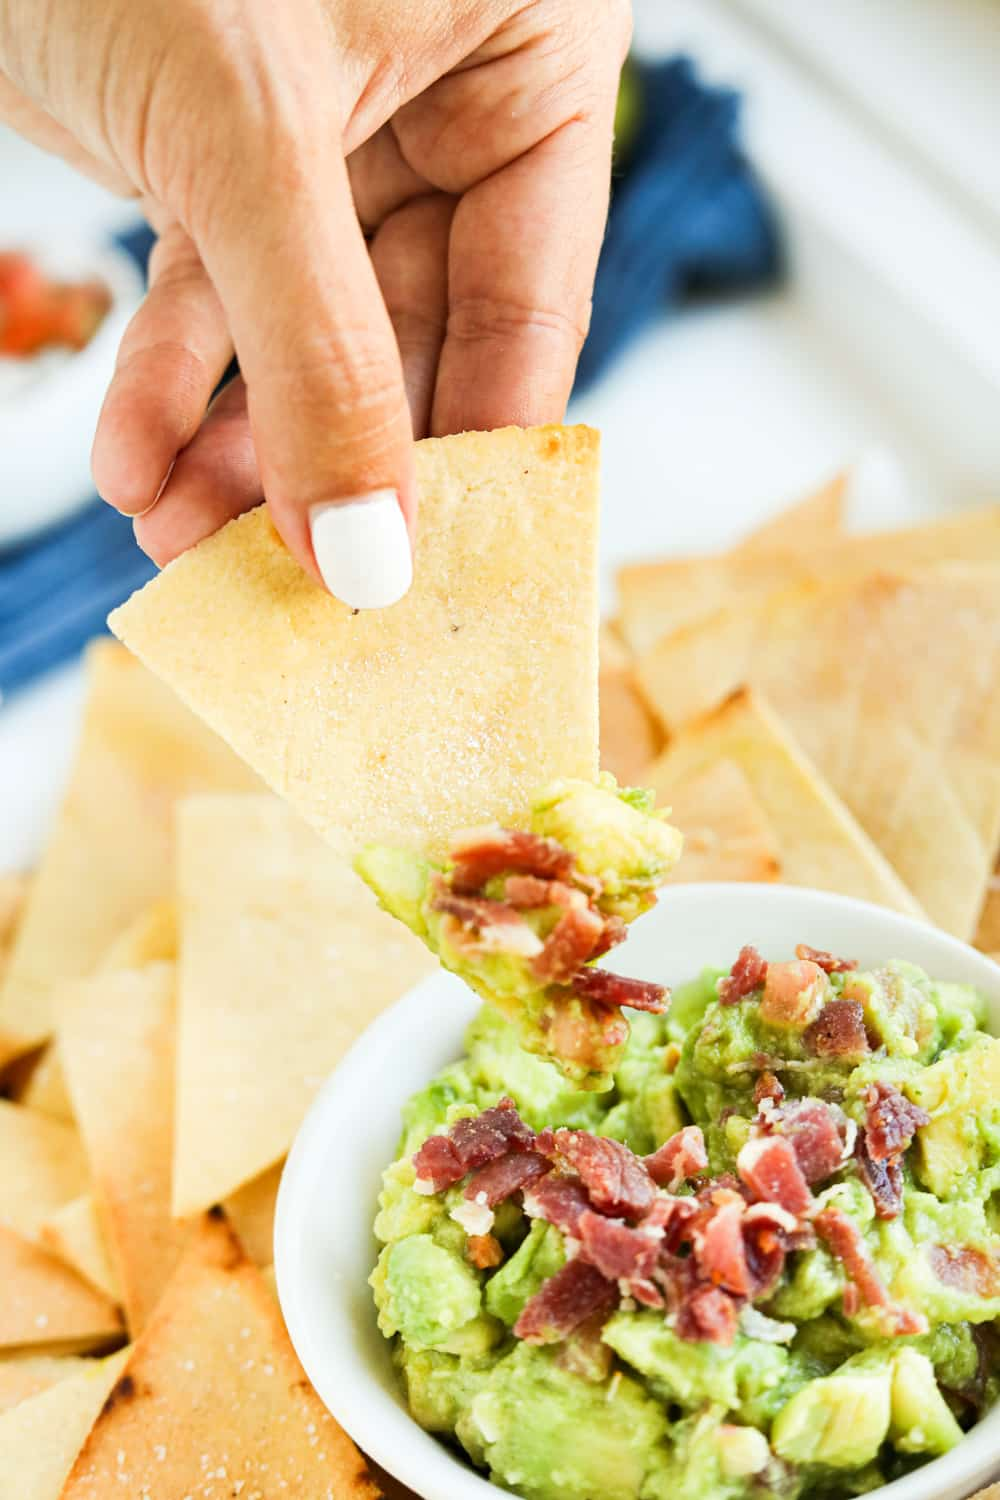 A tortilla chip scooping guacamole out of a bowl.